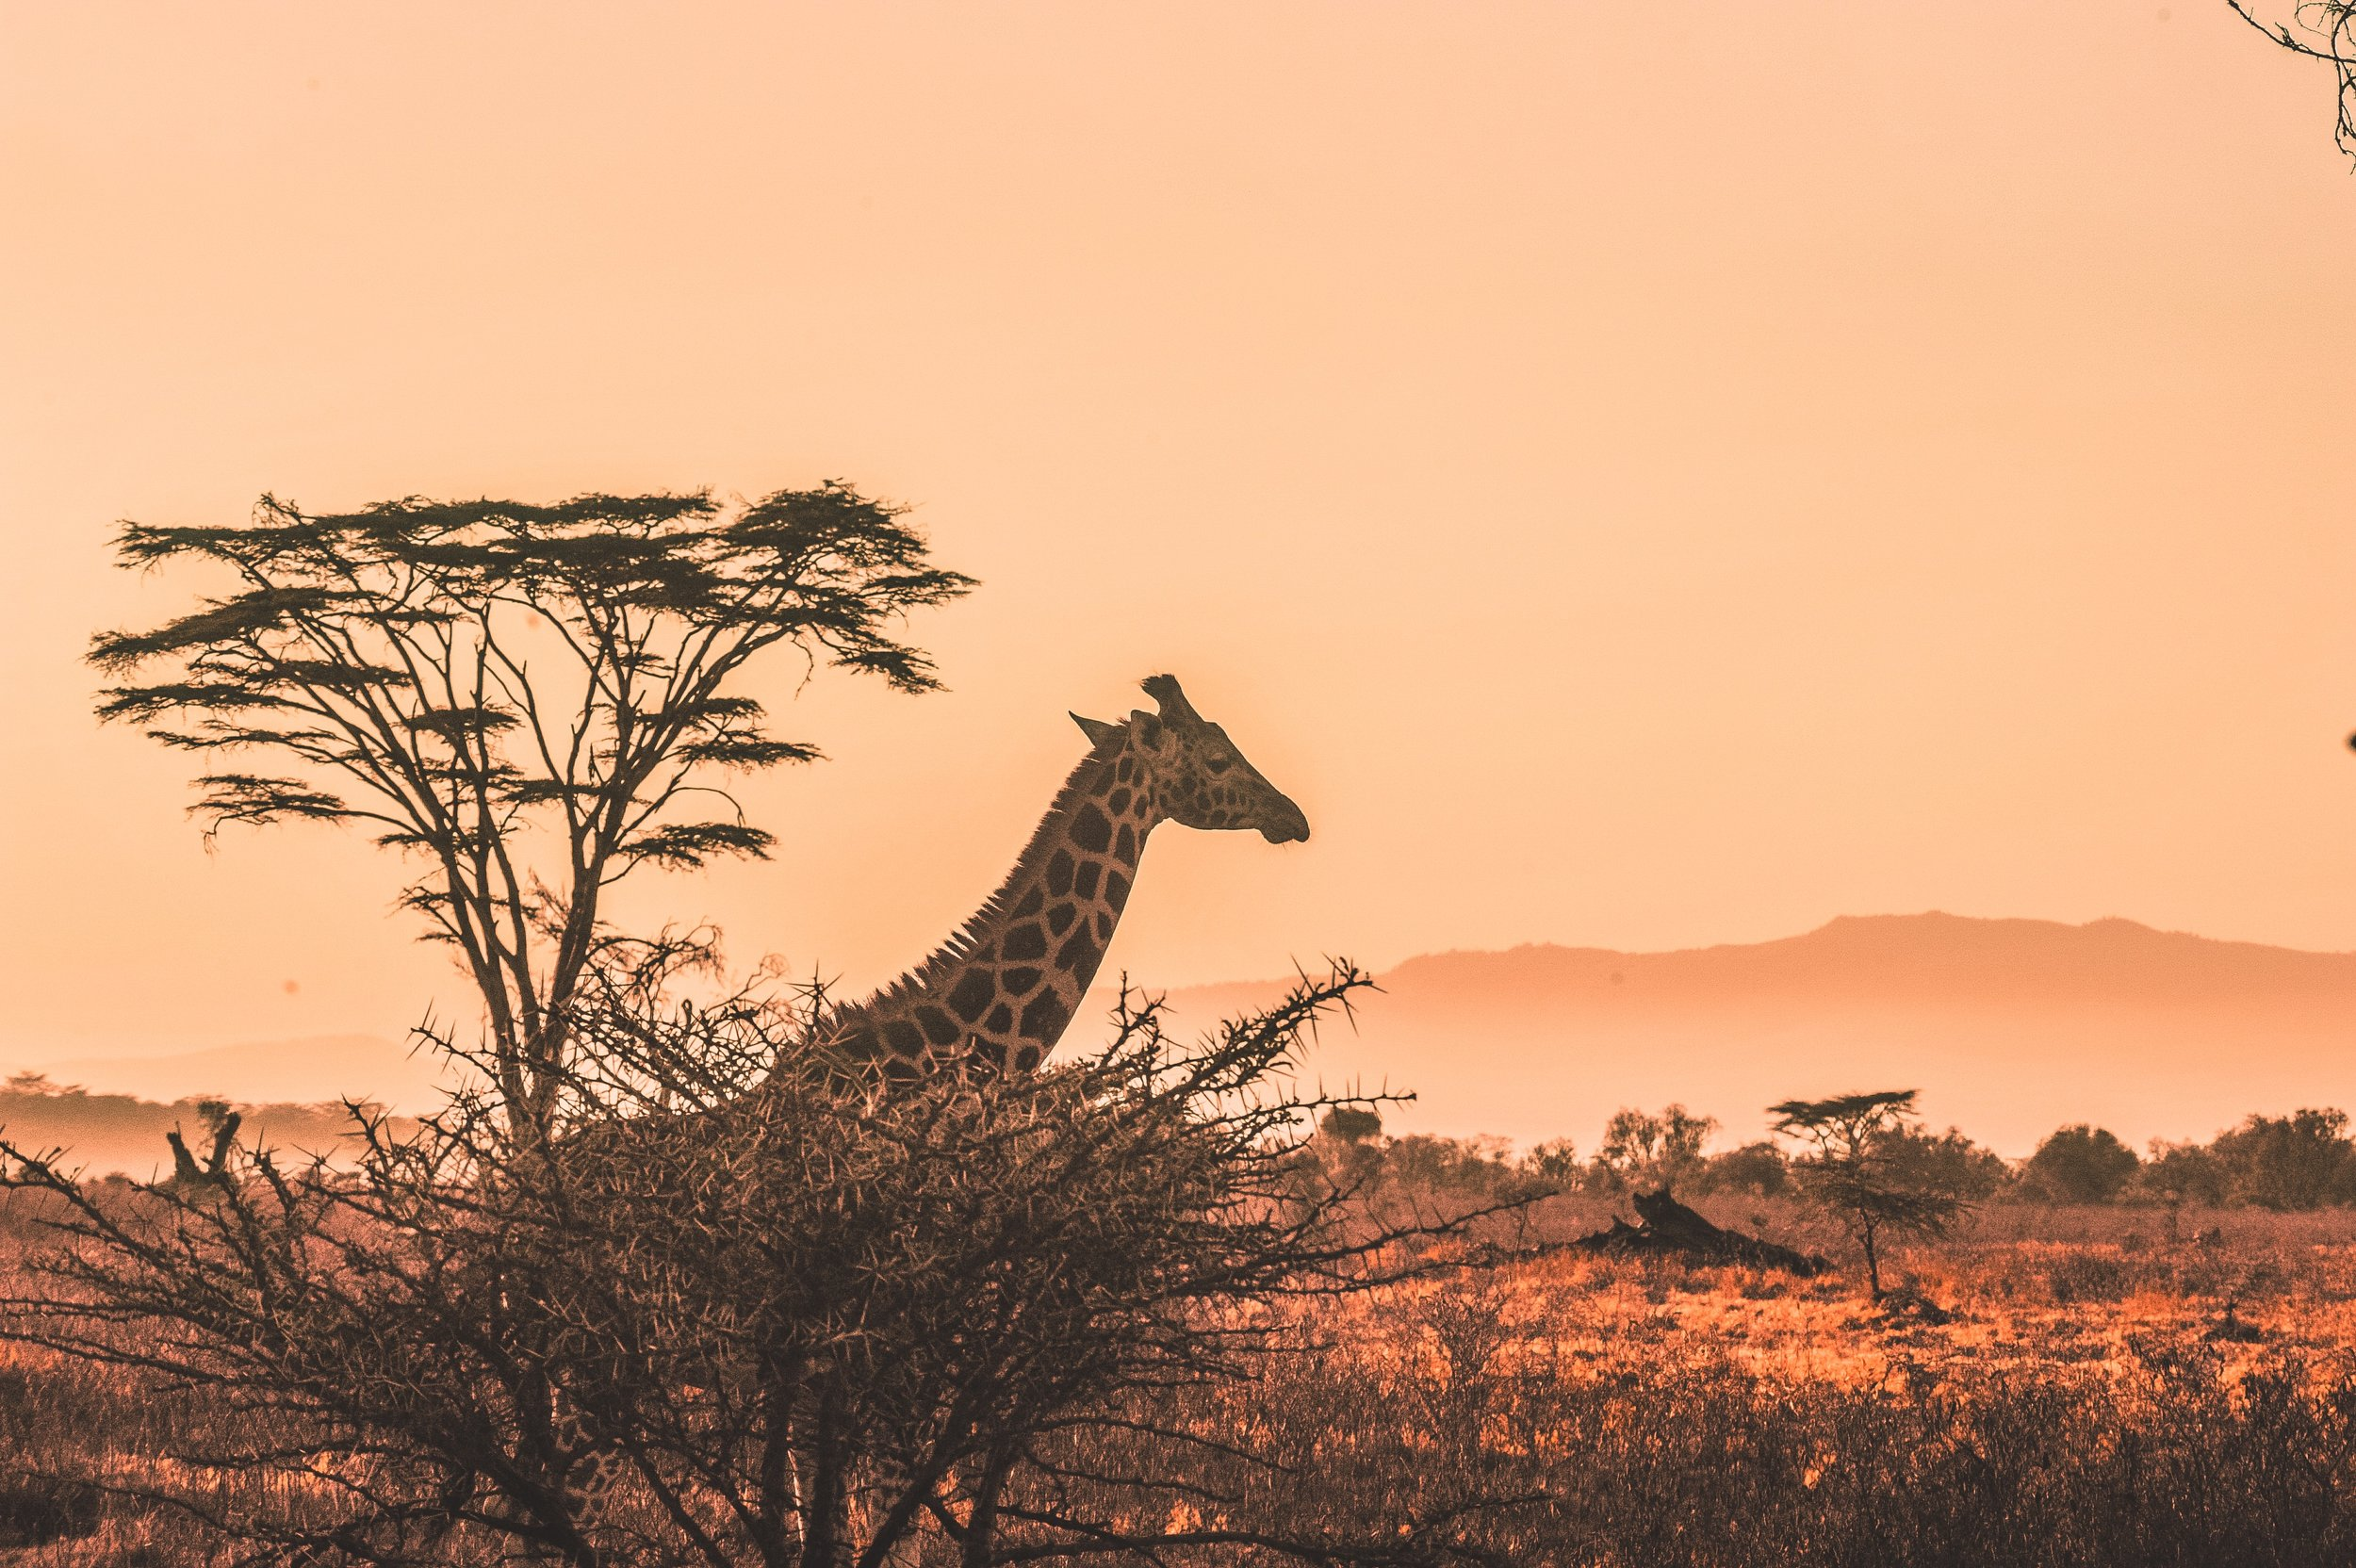 There are so many places to go on Safari in Africa, but a Serengeti Safari is truly magical.